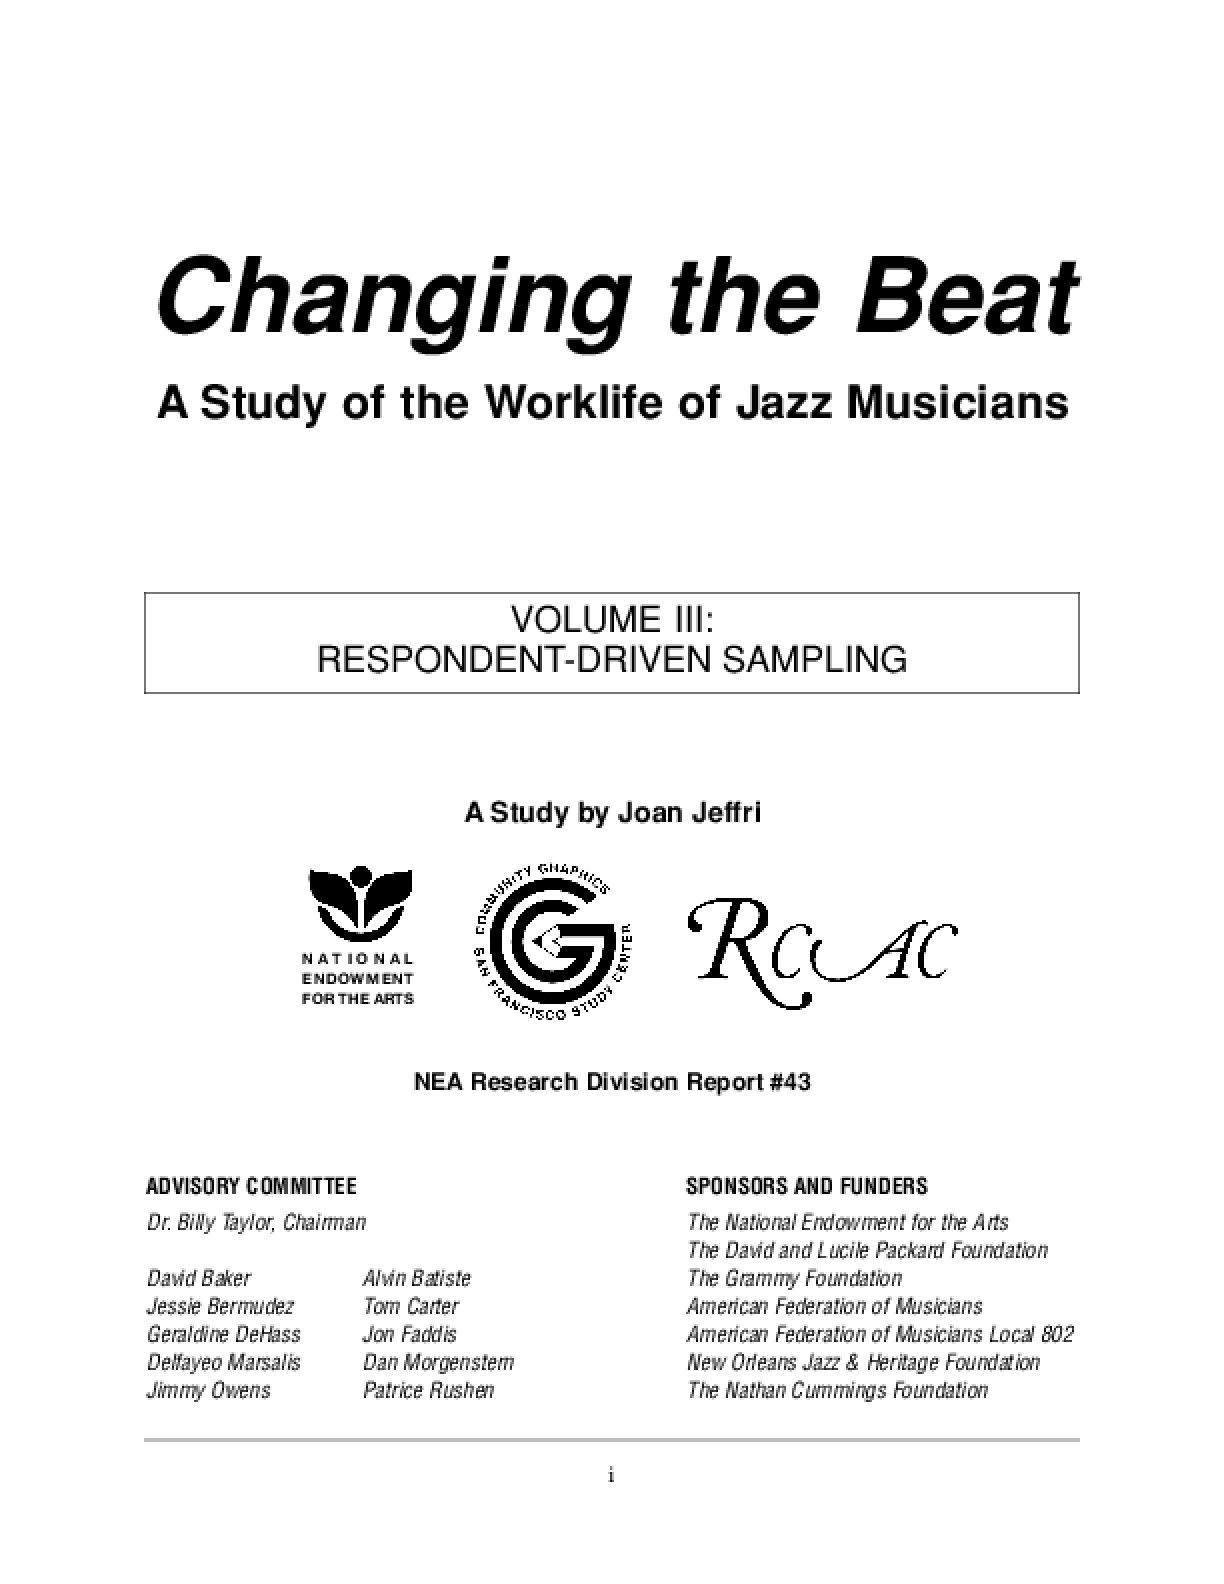 Changing the Beat: A Study of the Worklife of Jazz Musicians, Volume III: Respondent-Driven Sampling